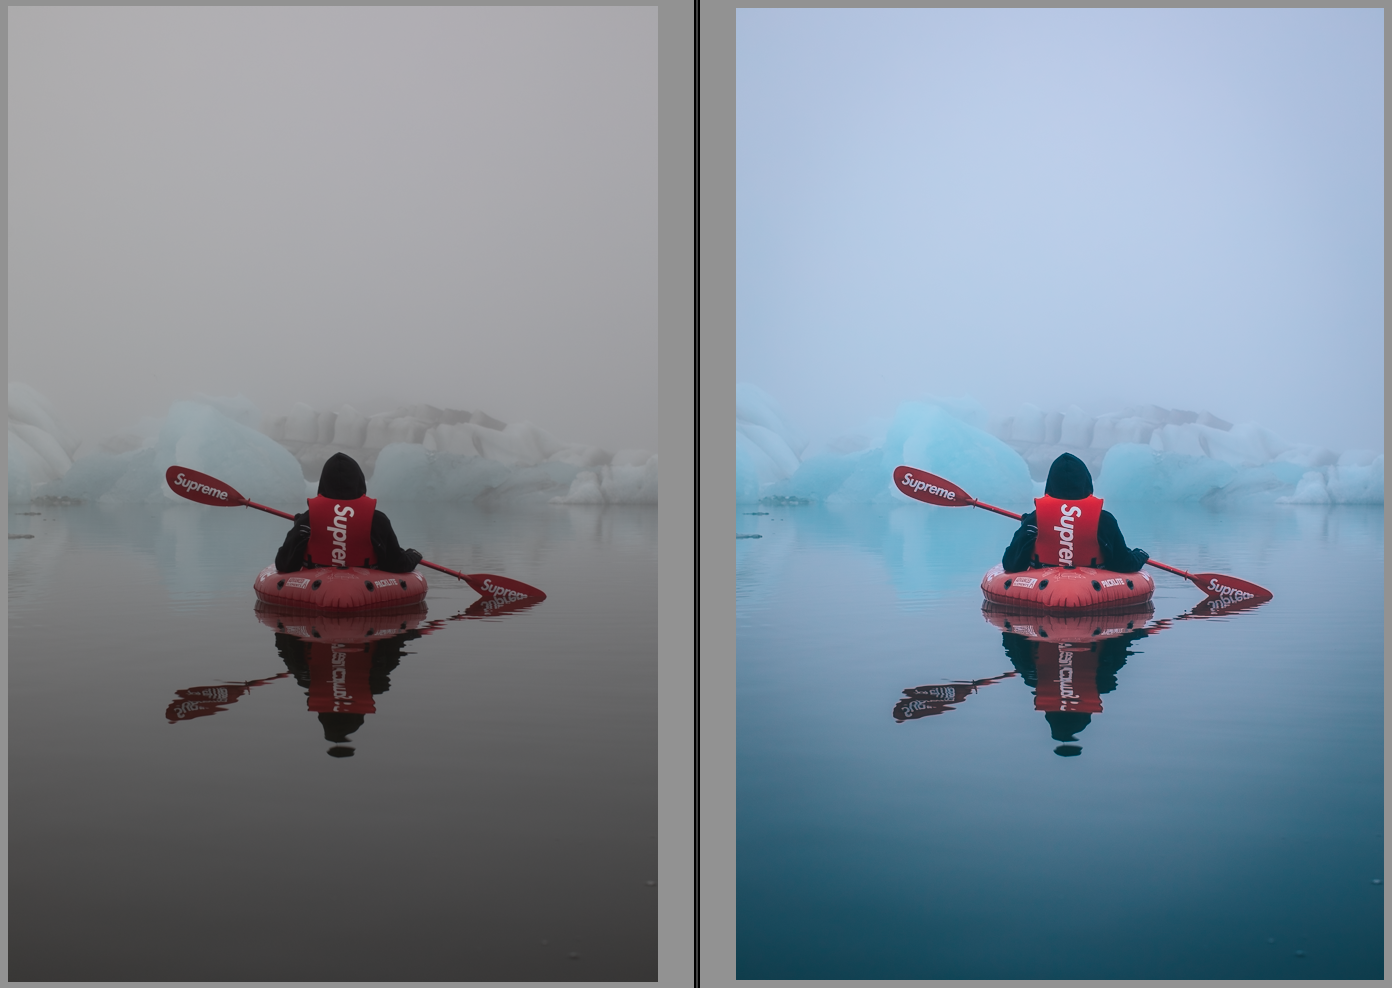 Kayaking in Iceland edited using the 'Icy Blue' preset.